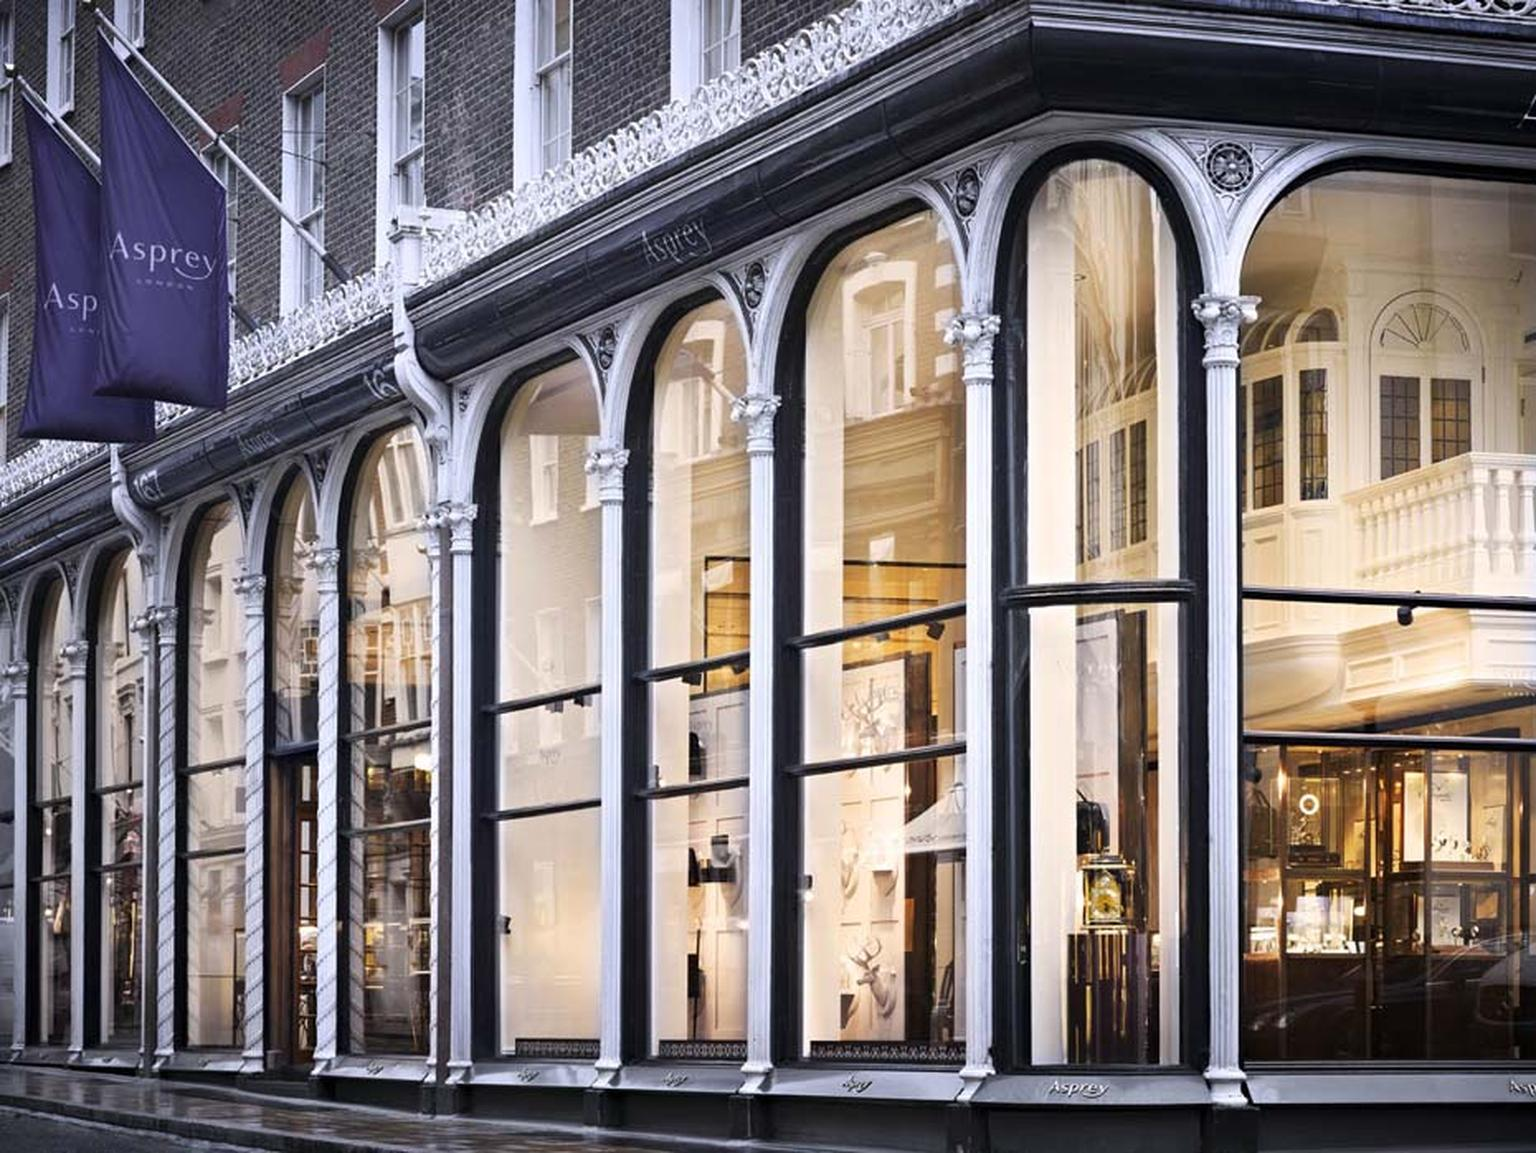 Spread across five Georgian townhouses, Asprey has been based on New Bond Street for 160 years. It recently welcomed Swiss watchmaker Bovet to its premises.